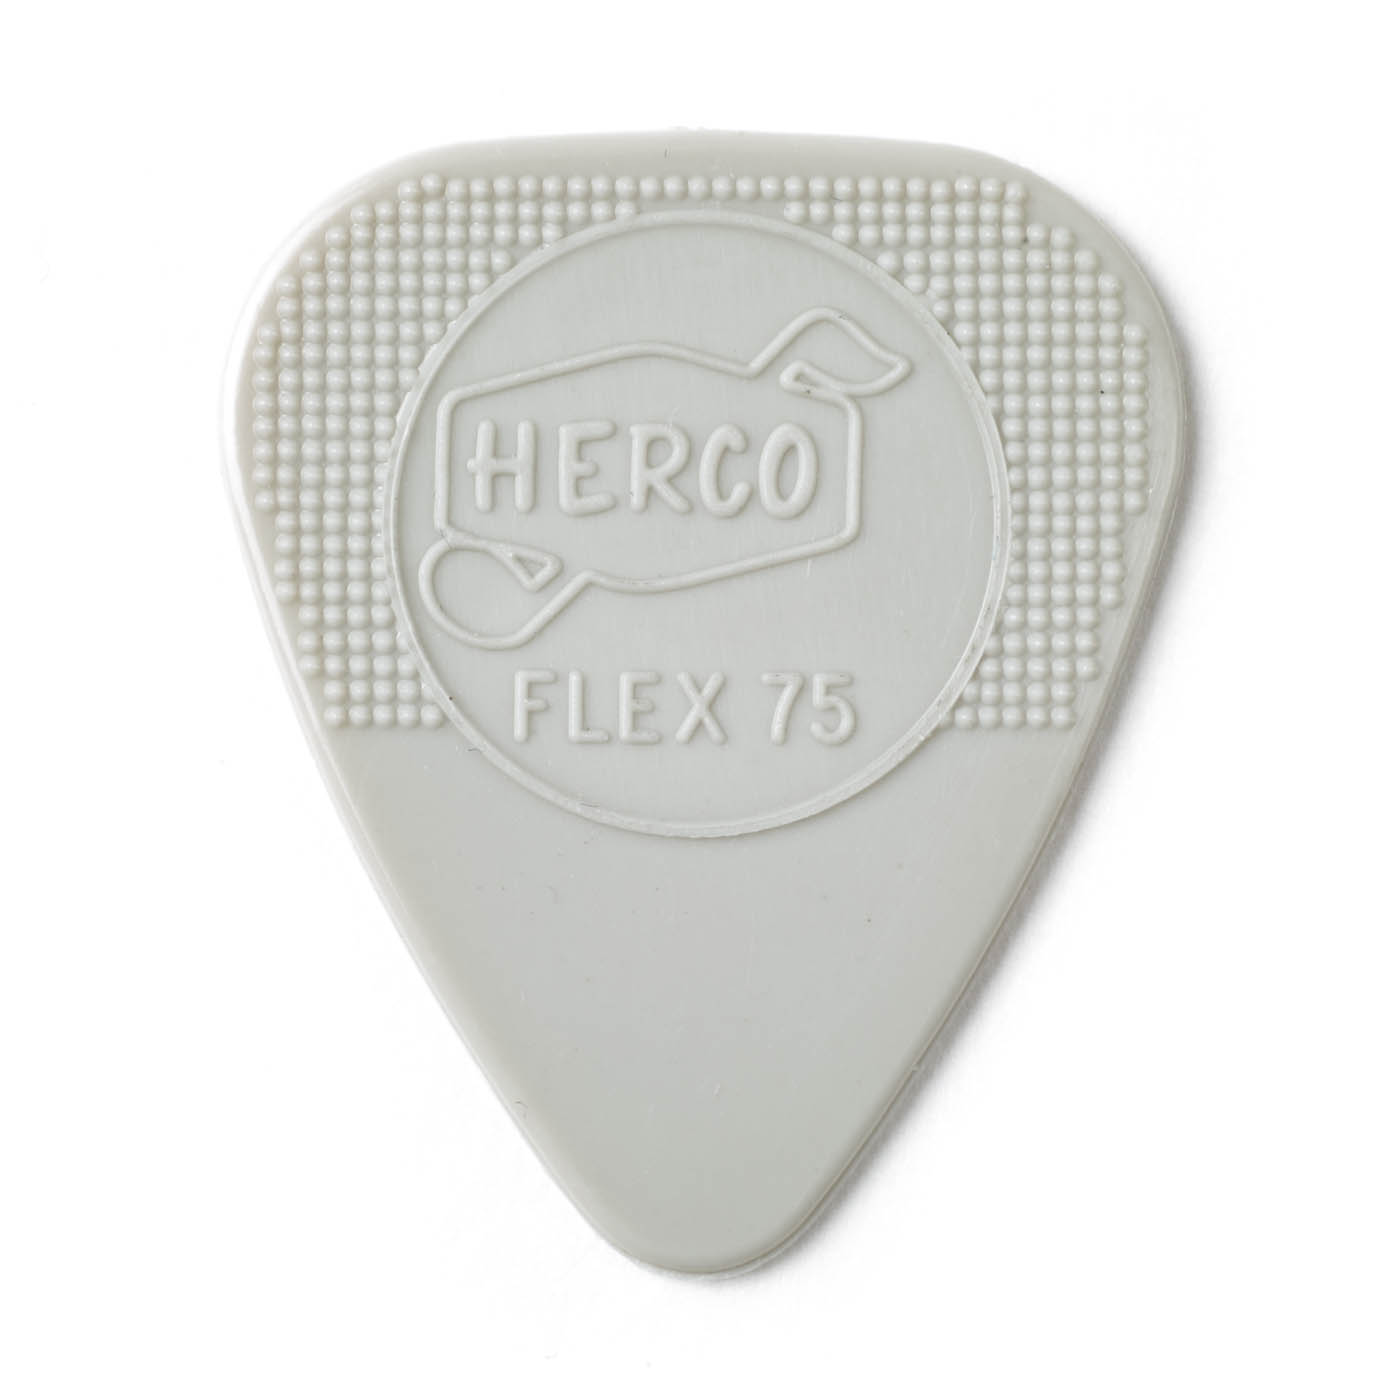 "Dunlop HE777P Hecro ""Holy Grail"" Guitar Pick 6 Pack by Dunlop"